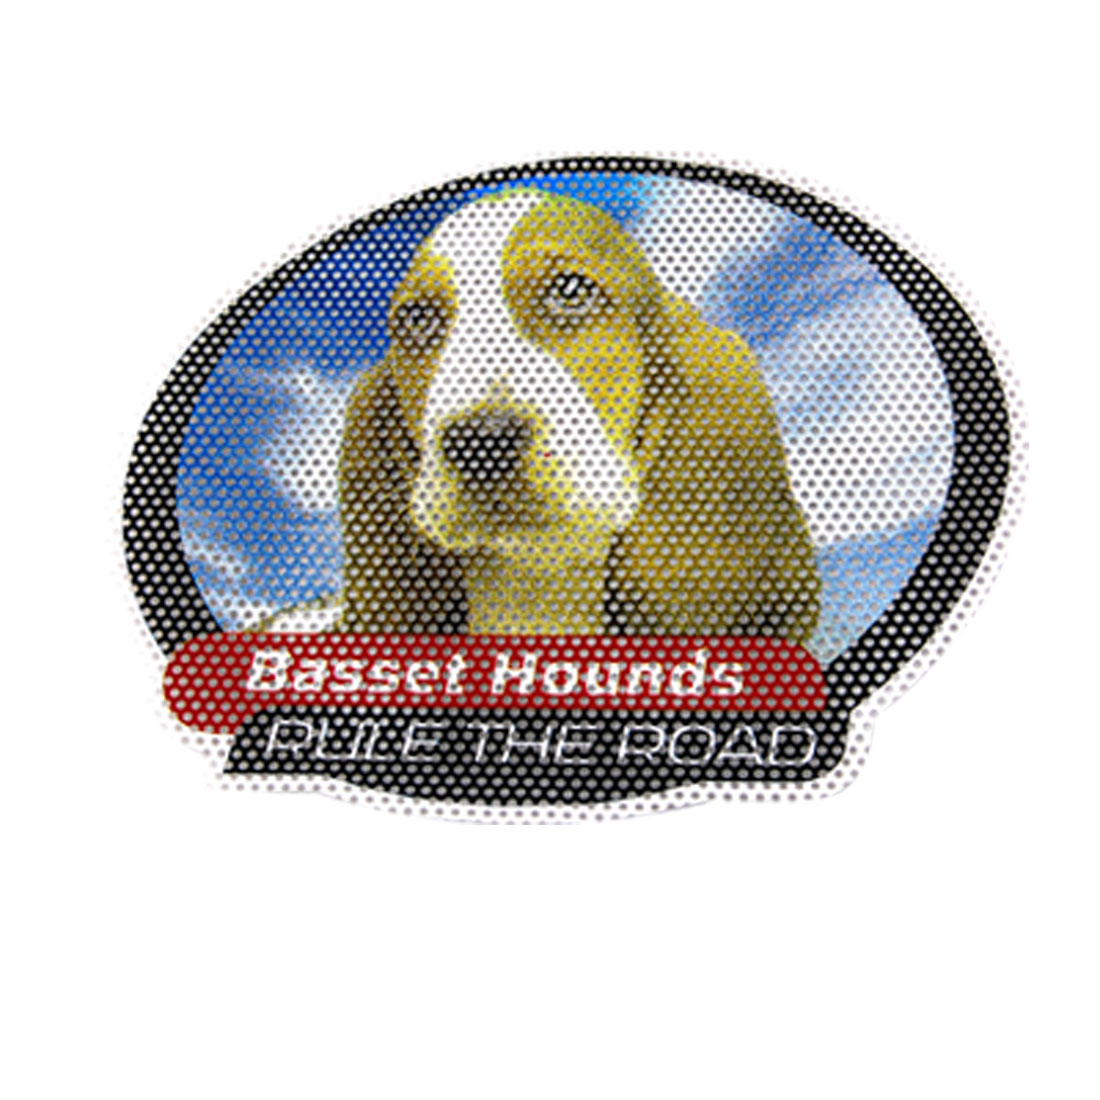 Olive Green Basset Hound Pattern Plastic Perforated Car Window Sticker